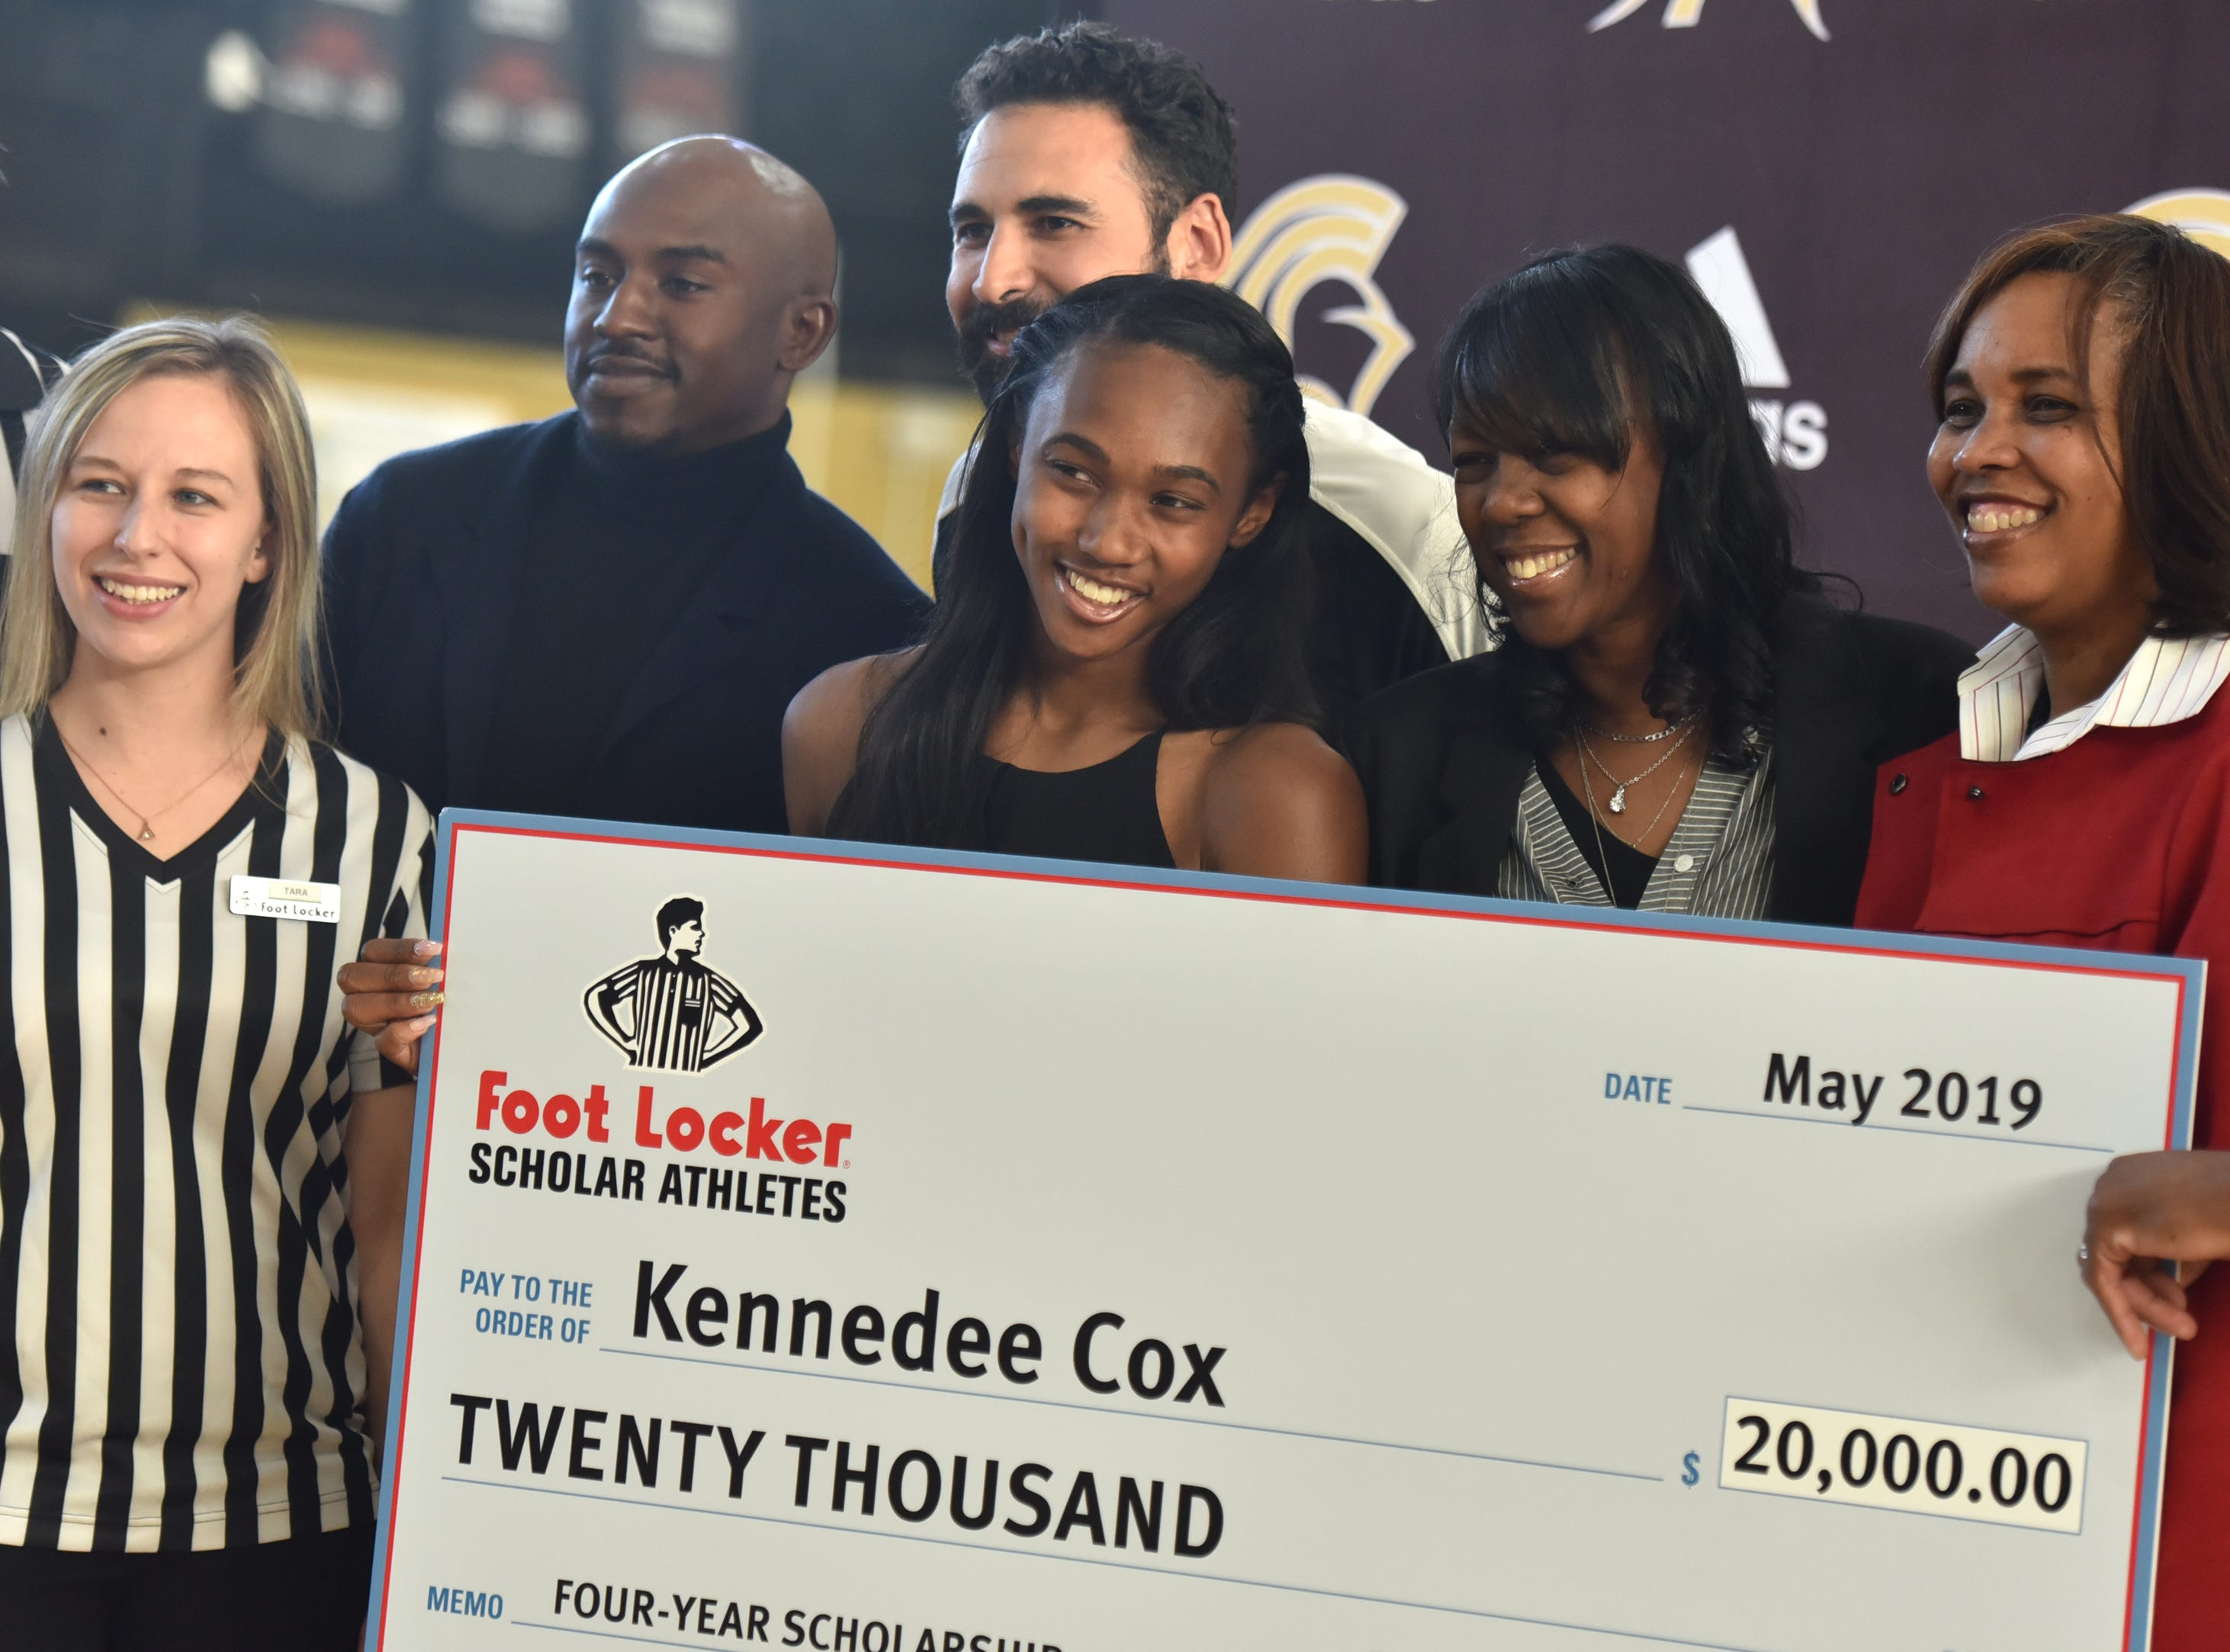 Tara Swett of Foot Locker, Paramus Catholic track coaches Brian Walker and Bryan Durango, Paramus Catholic senior Kennedee Cox, her mother Beverlee Garvin and Cox's aunt Celeste Garvin-Hayes pose for pictures with a $20,000 check Cox received from the Foot Locker Scholar Athletes Program. Foot Locker representatives surprised Cox with the announcement at school on Wednesday, May 15, 2019.